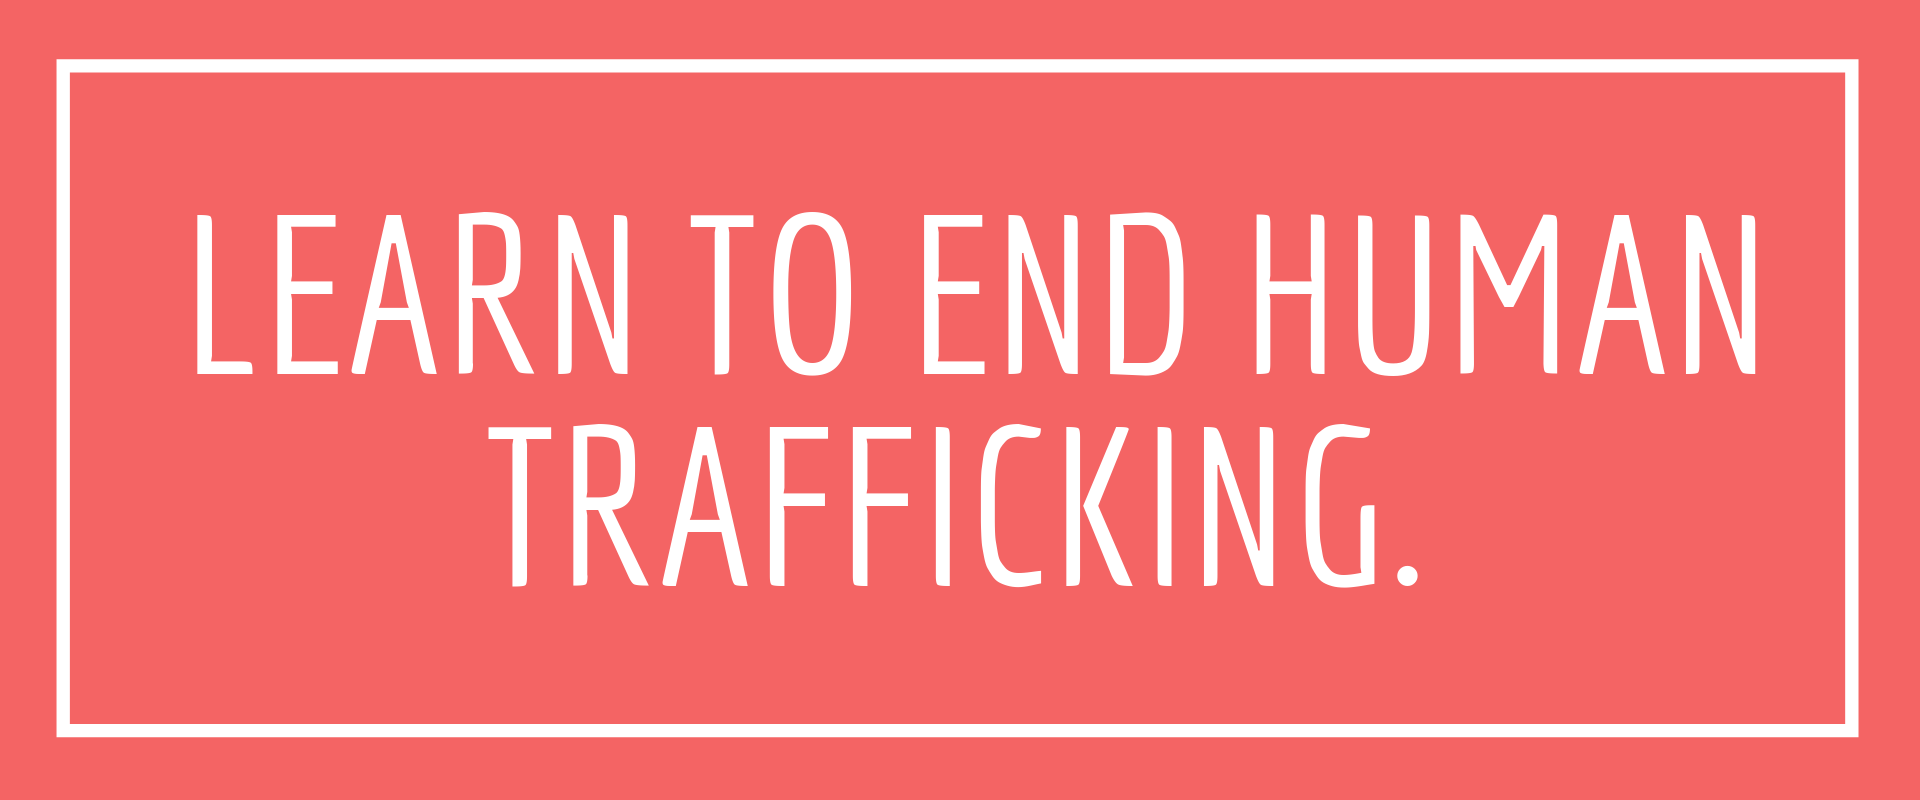 Learn-to-stop-human-trafficking.